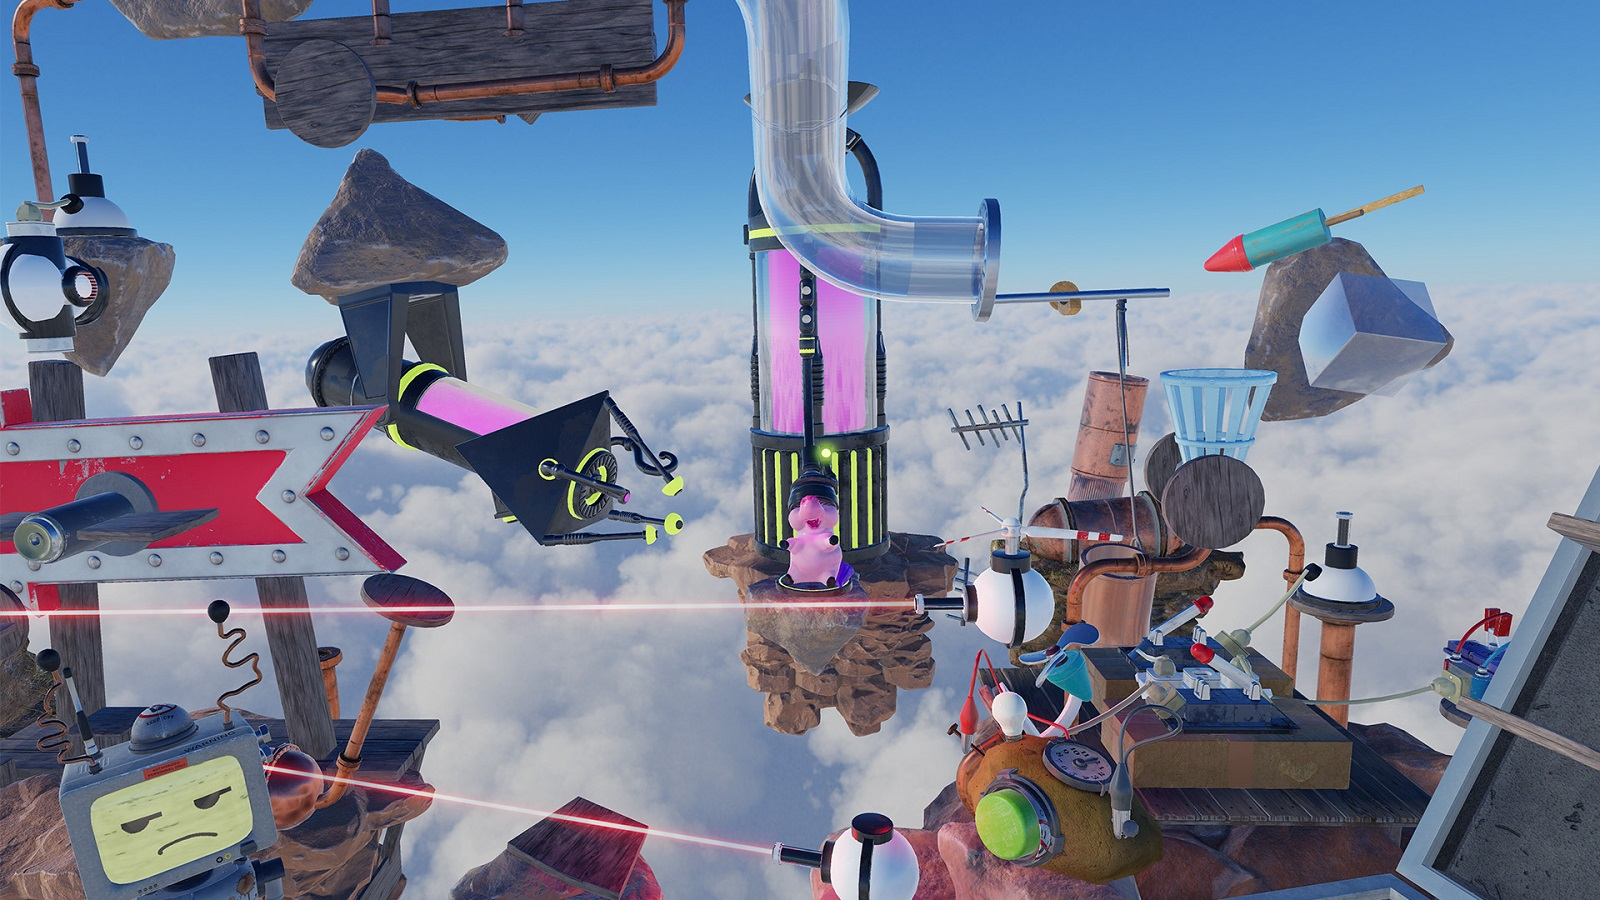 Crazy Machines VR Makes The Virtual World A Little Bit More Fun And Chaotic